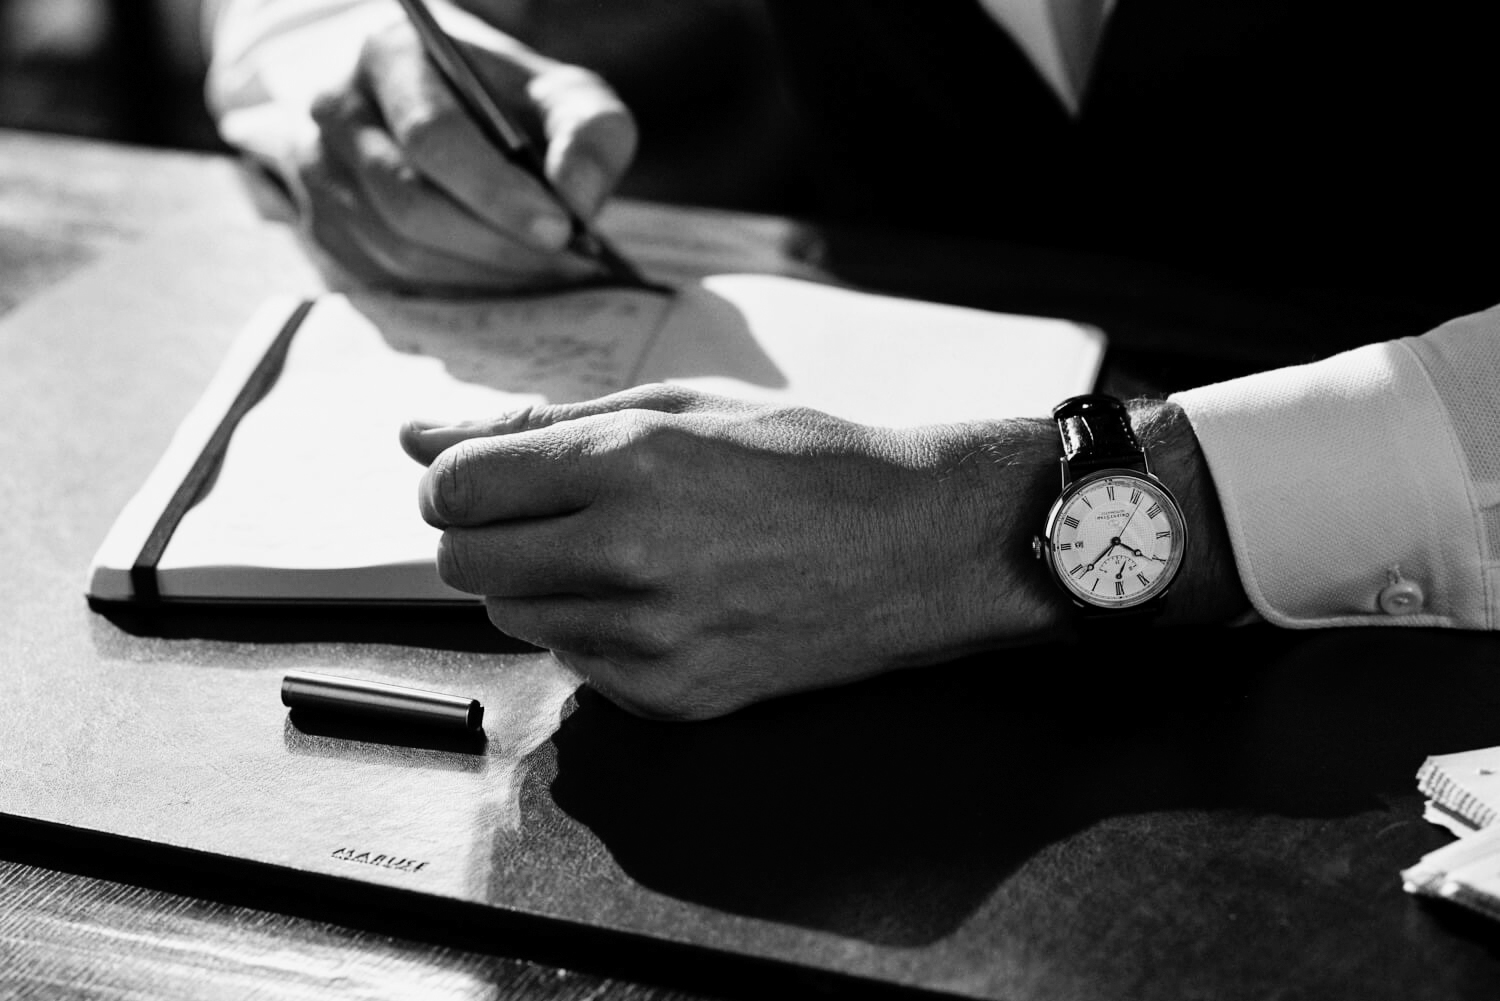 Orient watch on study desk by lifestyle photographer Tim Cole